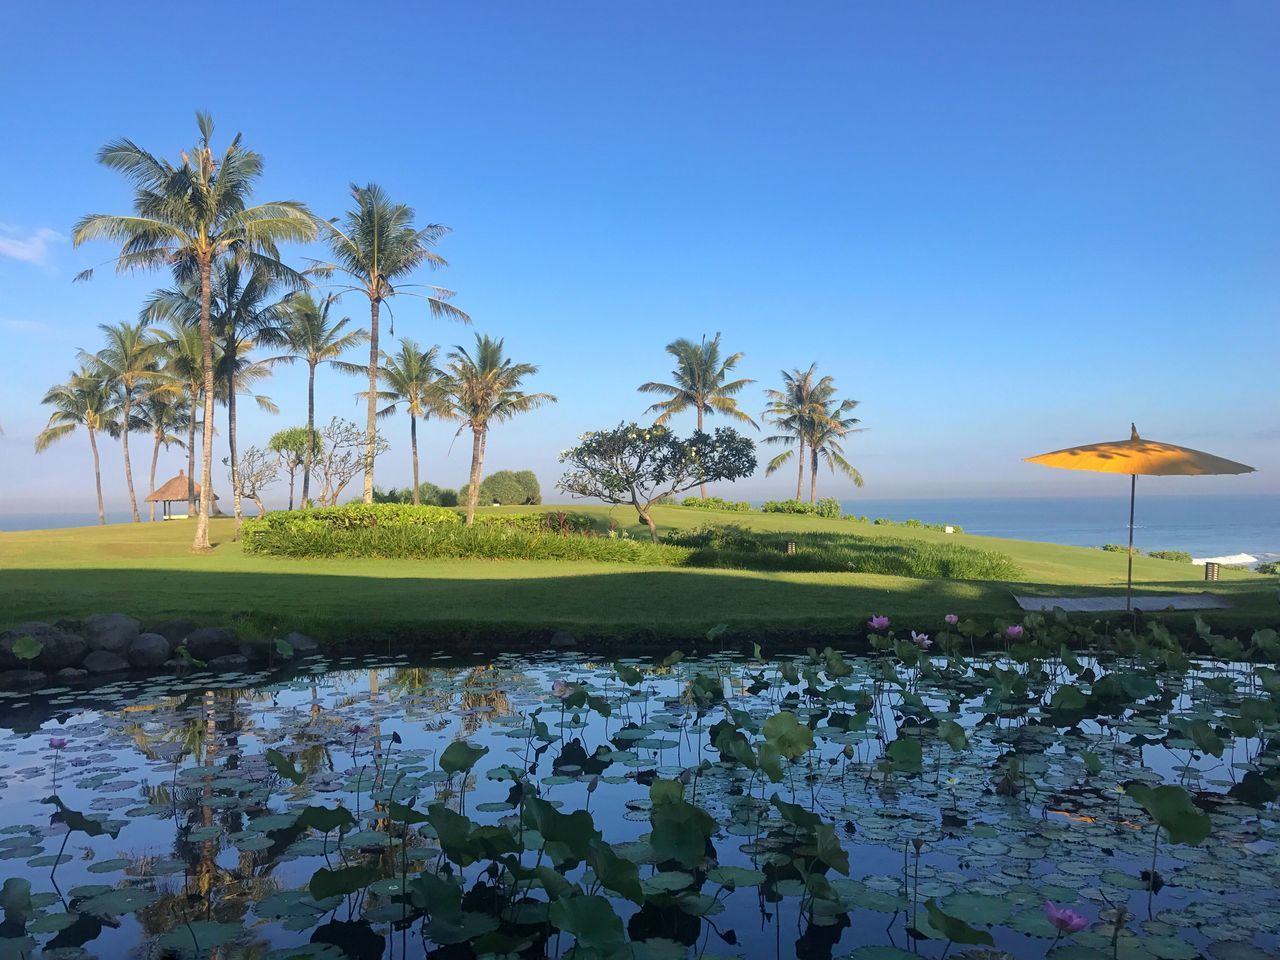 The Great Outdoors - 2017 EyeEm Awards Beauty In Nature Nature Tranquil Scene Palm Tree Tranquility Water Growth Scenics Tree No People Outdoors Clear Sky Blue Day Landscape Bali Holiday Lily Pond Yellow Umbrella Travel Destinations Sky Plant Ocean View Morning Light